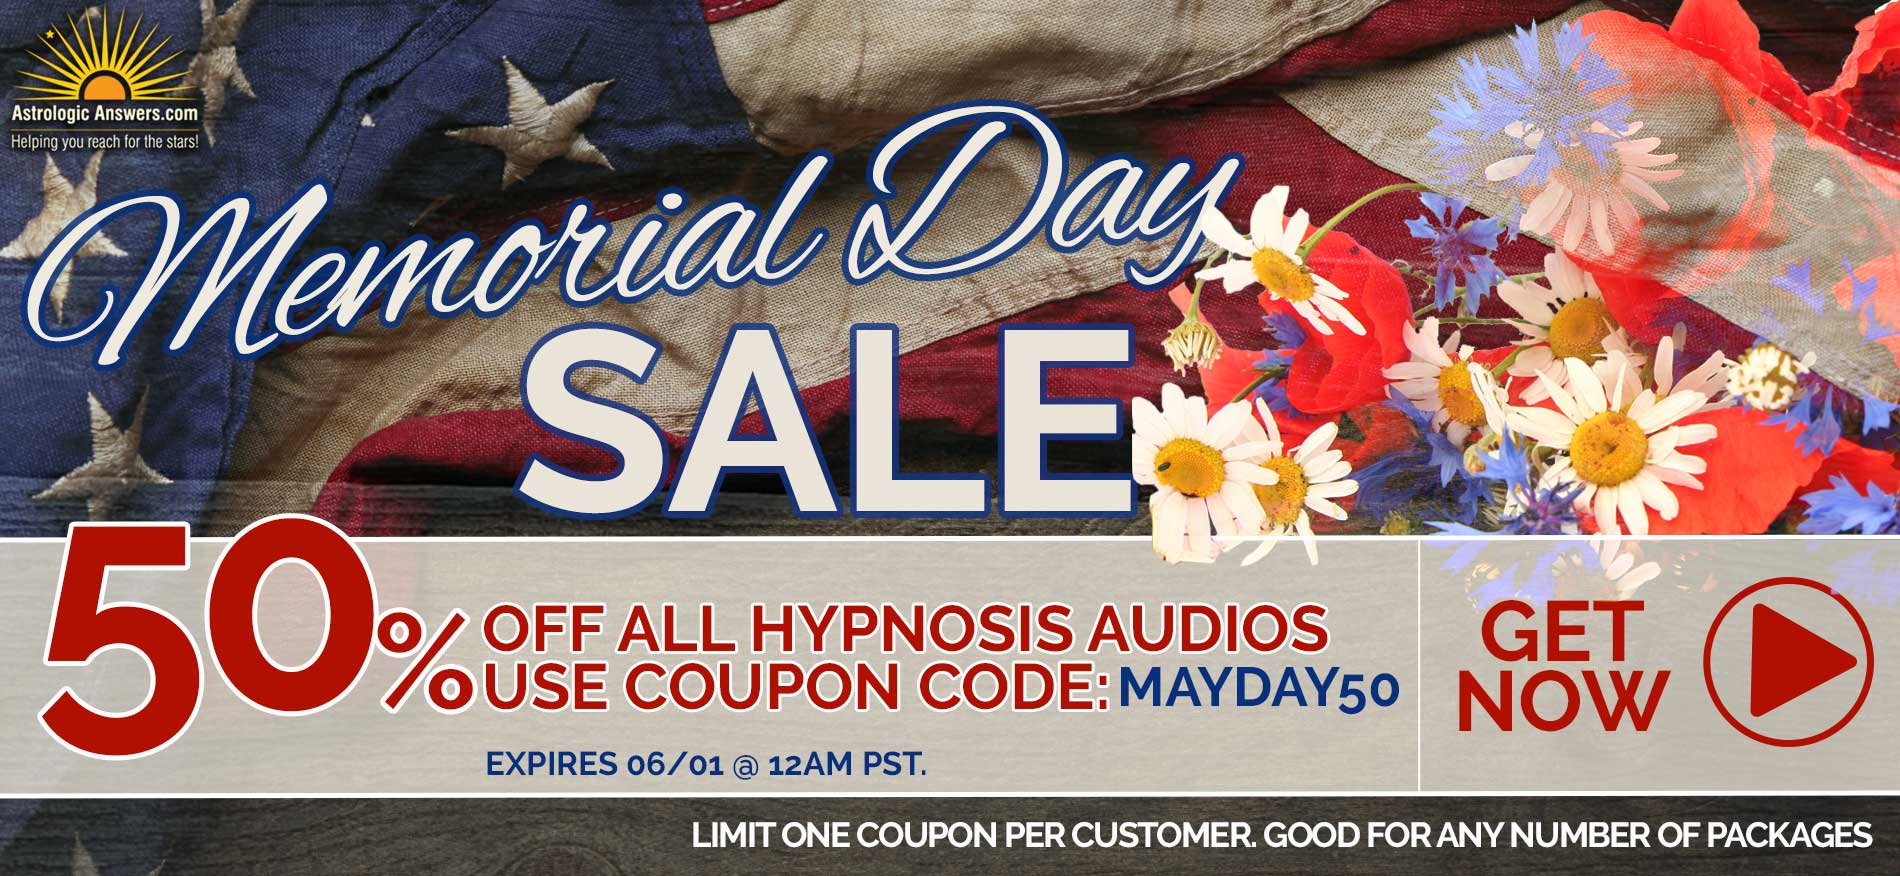 Click to go to the Memorial Day Sale!